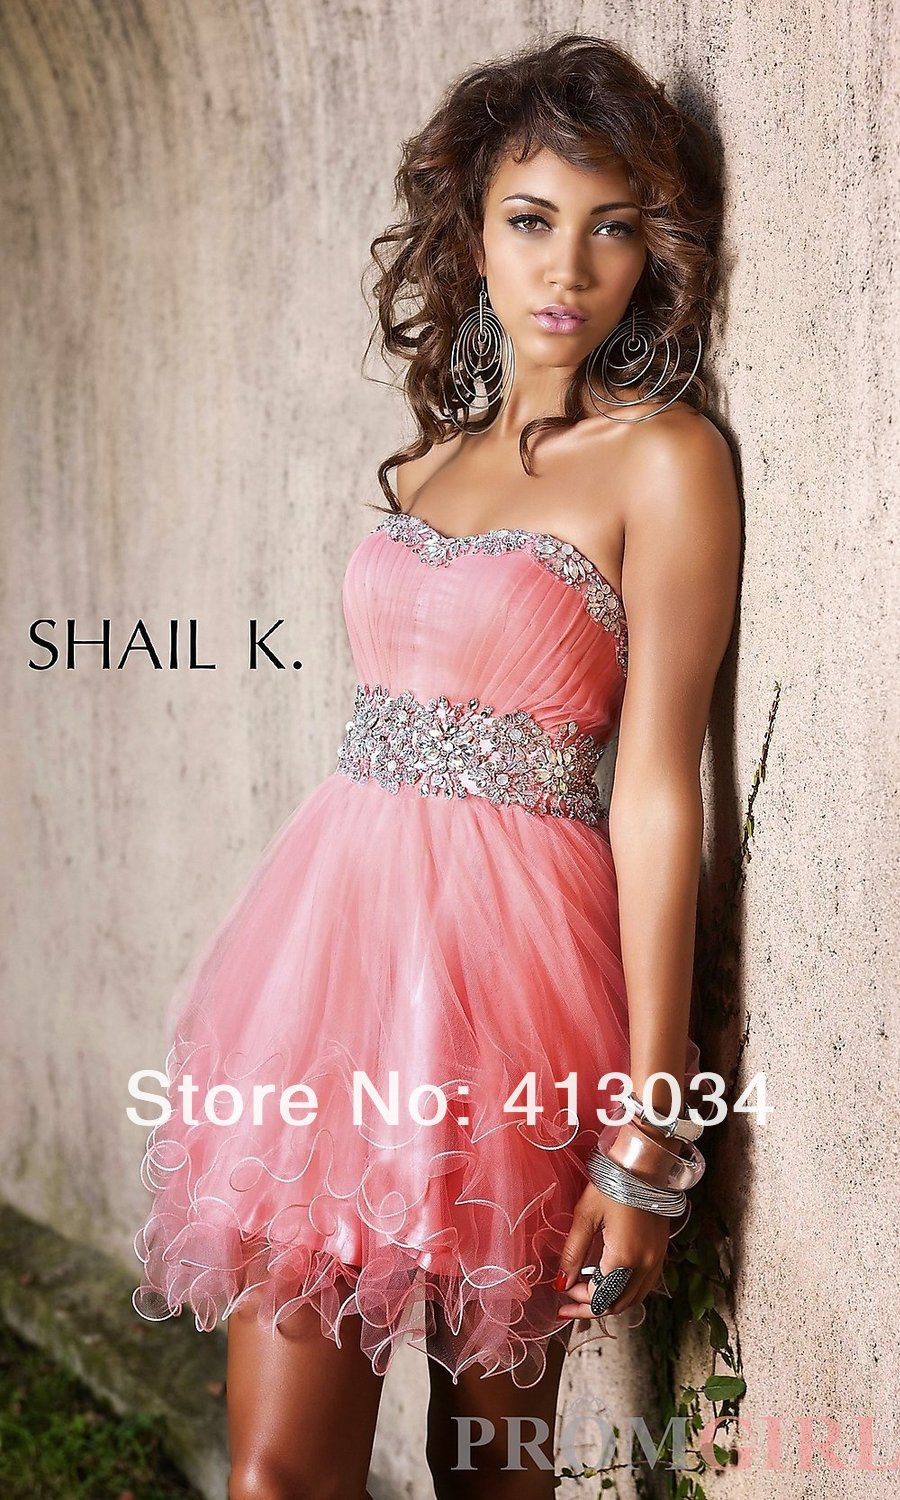 2beebf8d277 2013 Hot Sale New Short Strapless Shail K Prom Dress-in Cocktail Dresses  from Weddings   Events on Aliexpress.com